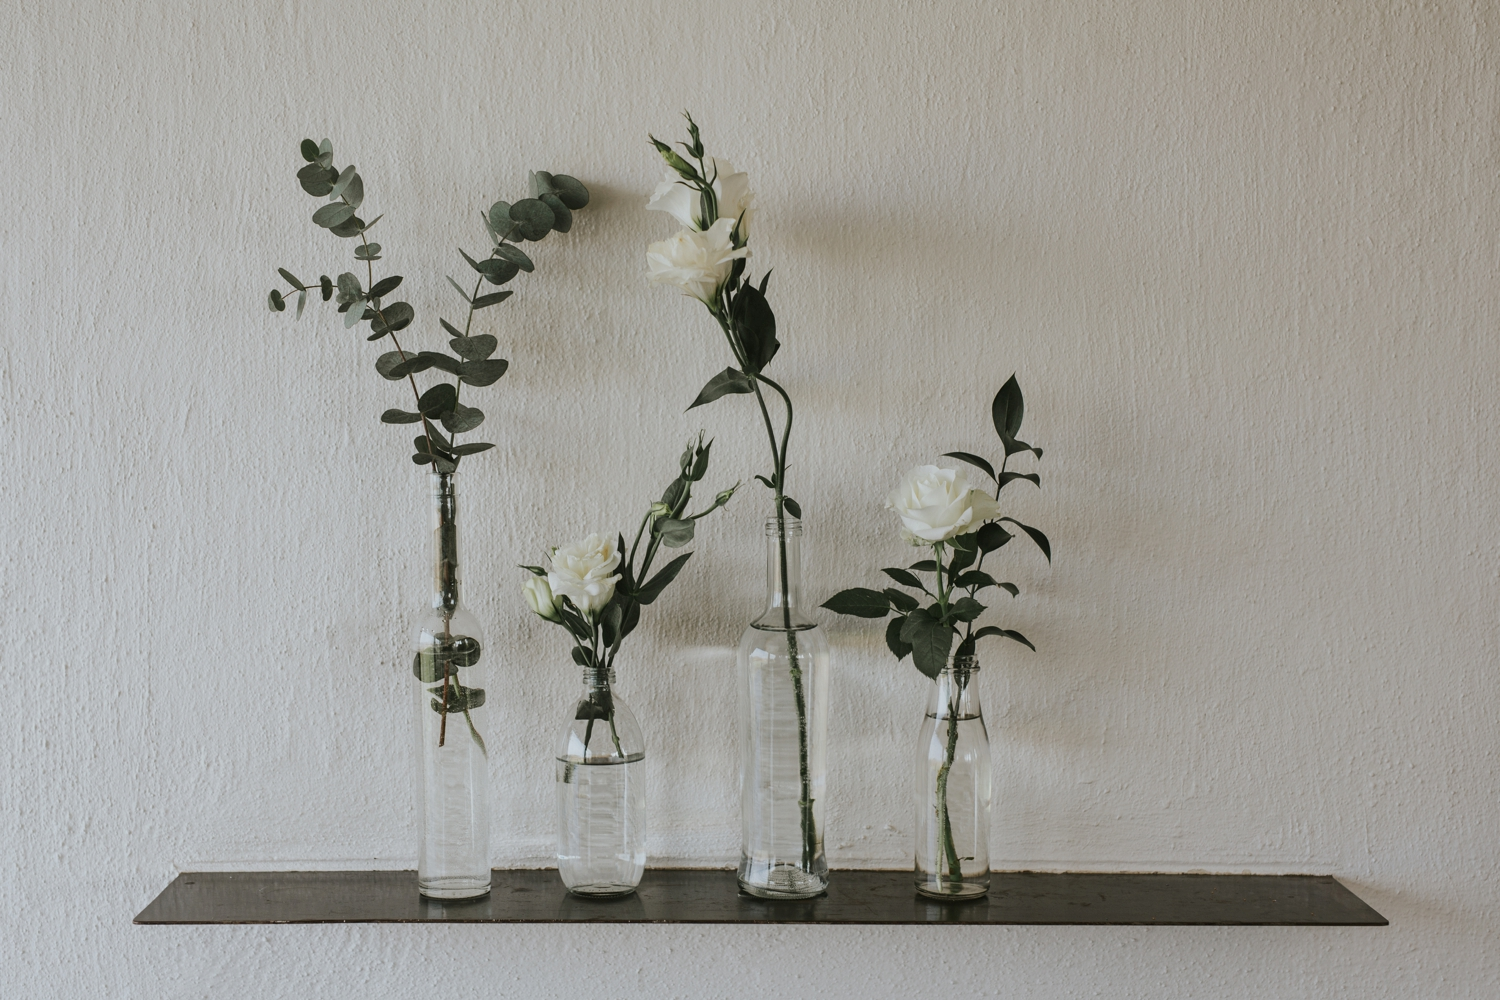 Simple wedding flowers, simple glass bottles with springs of eucalyptus and white roses at classic Vancouver wedding.